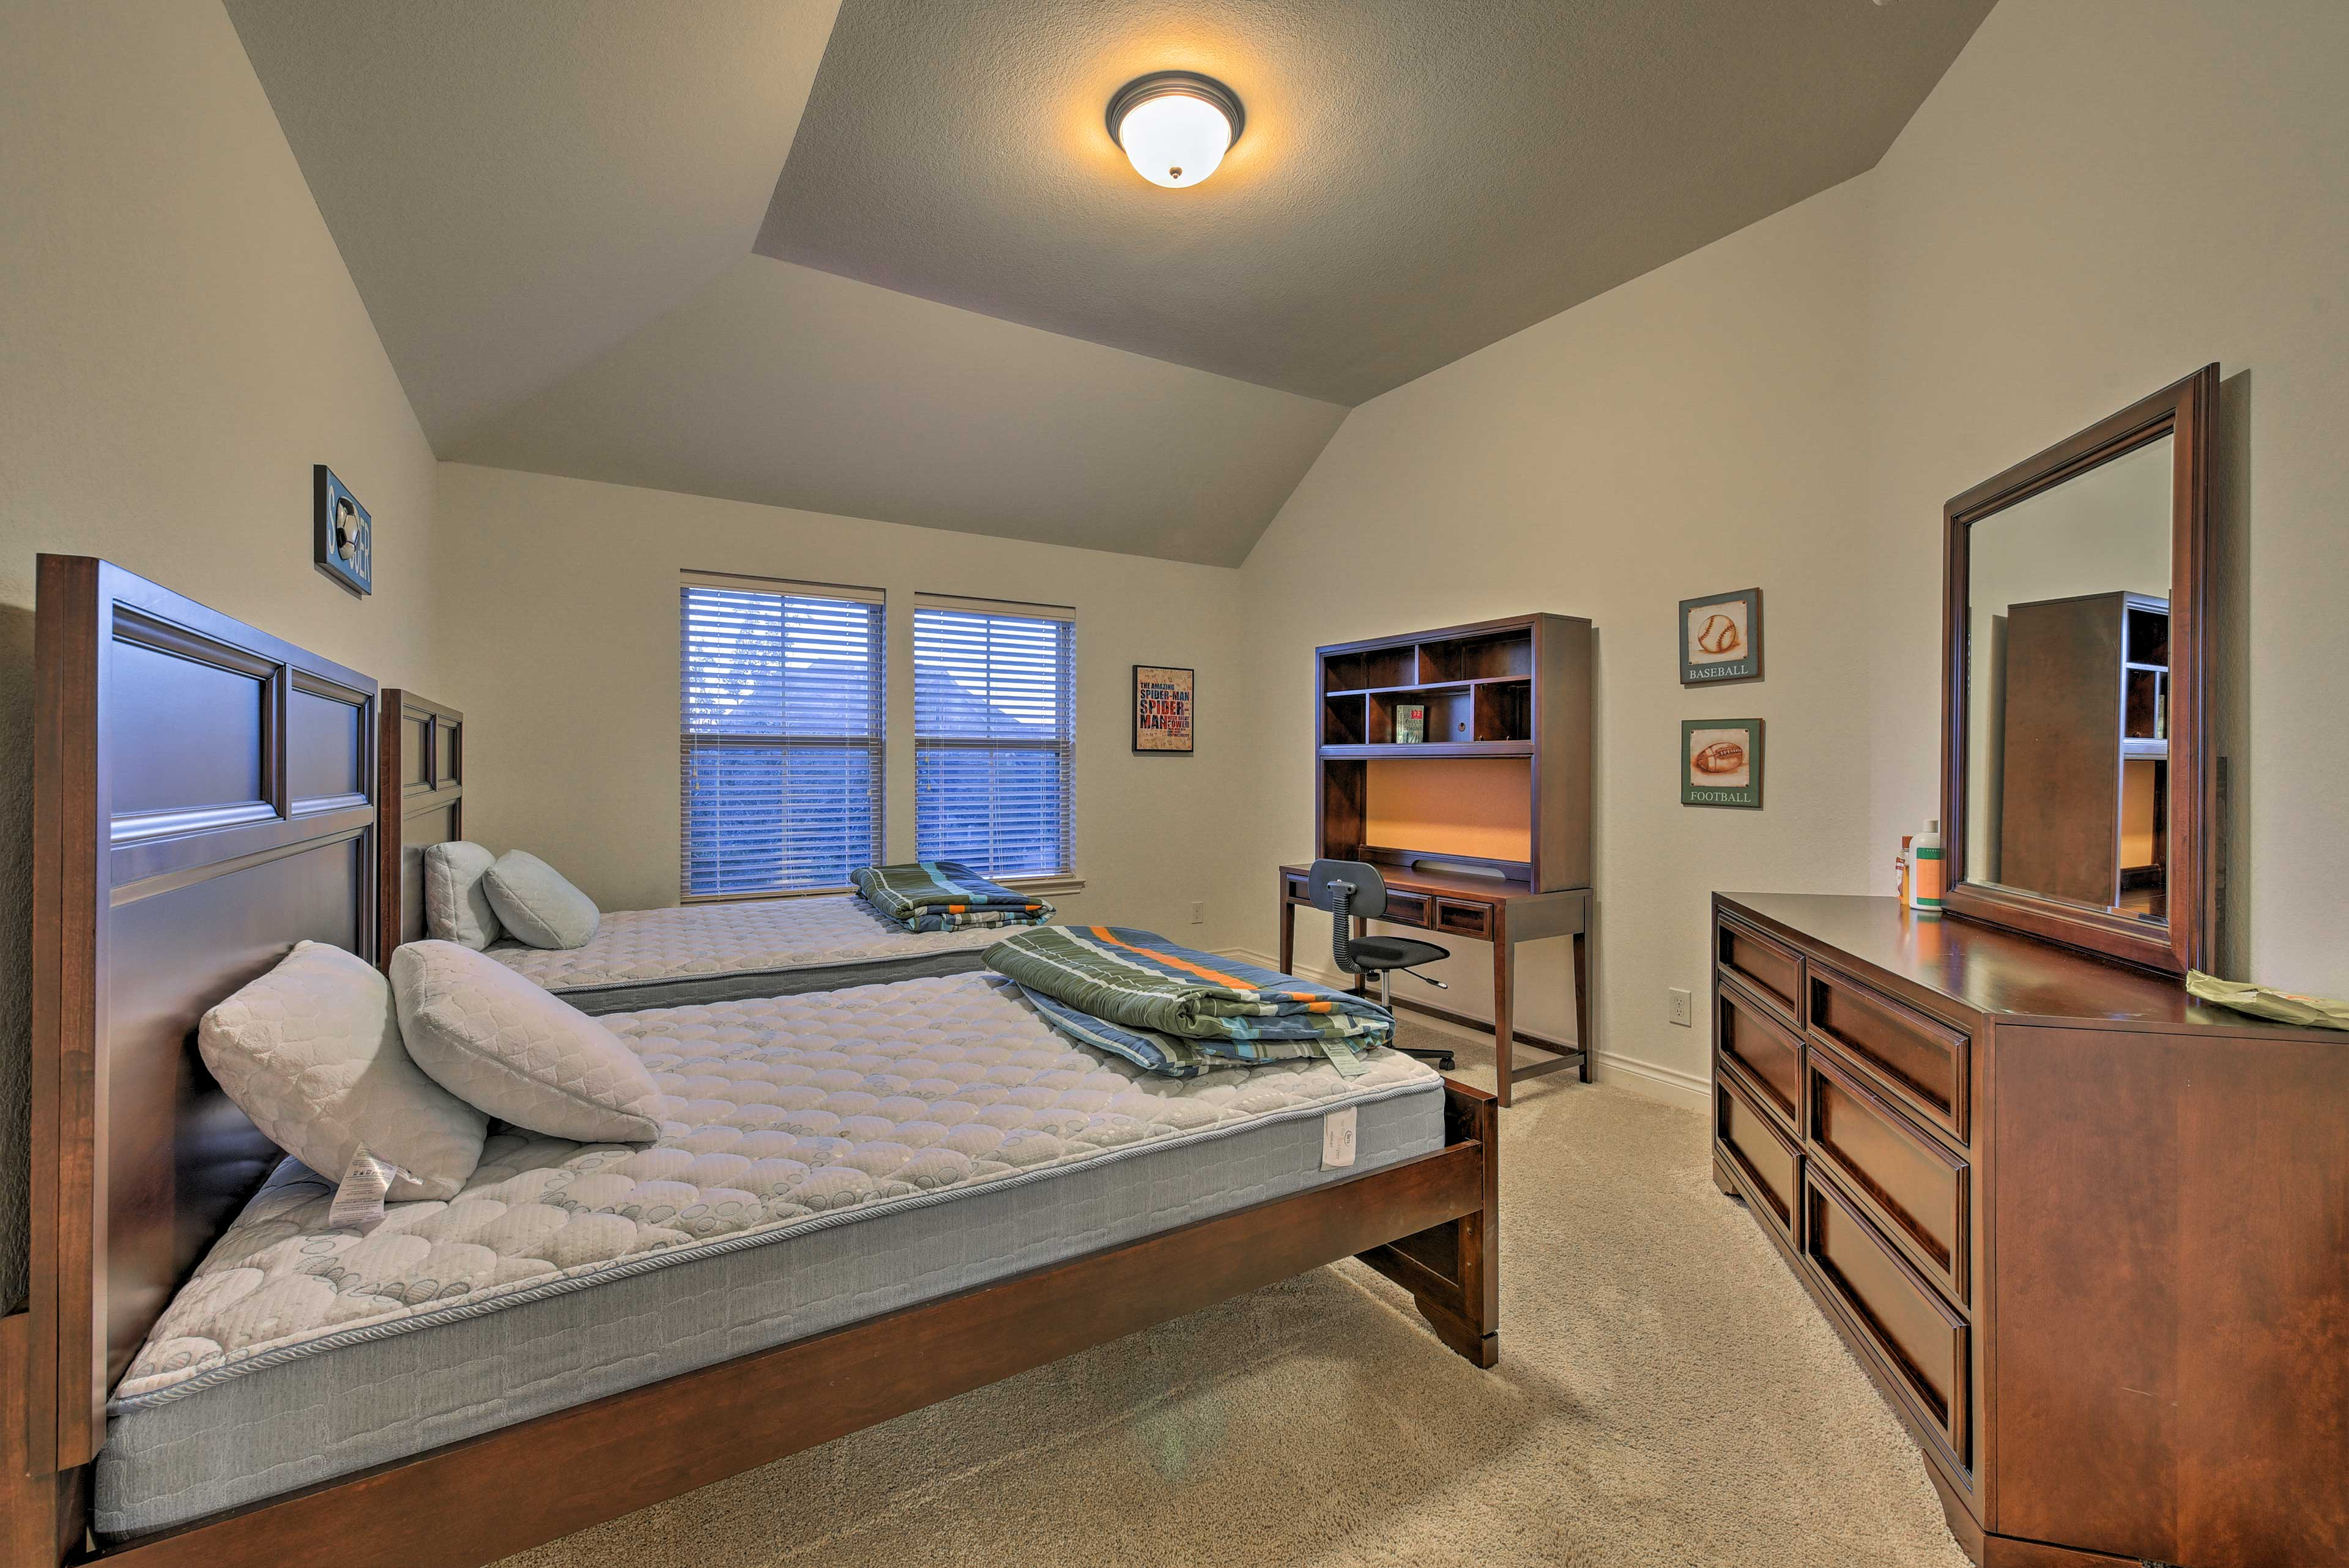 With 2 full beds, this room can sleep 4.